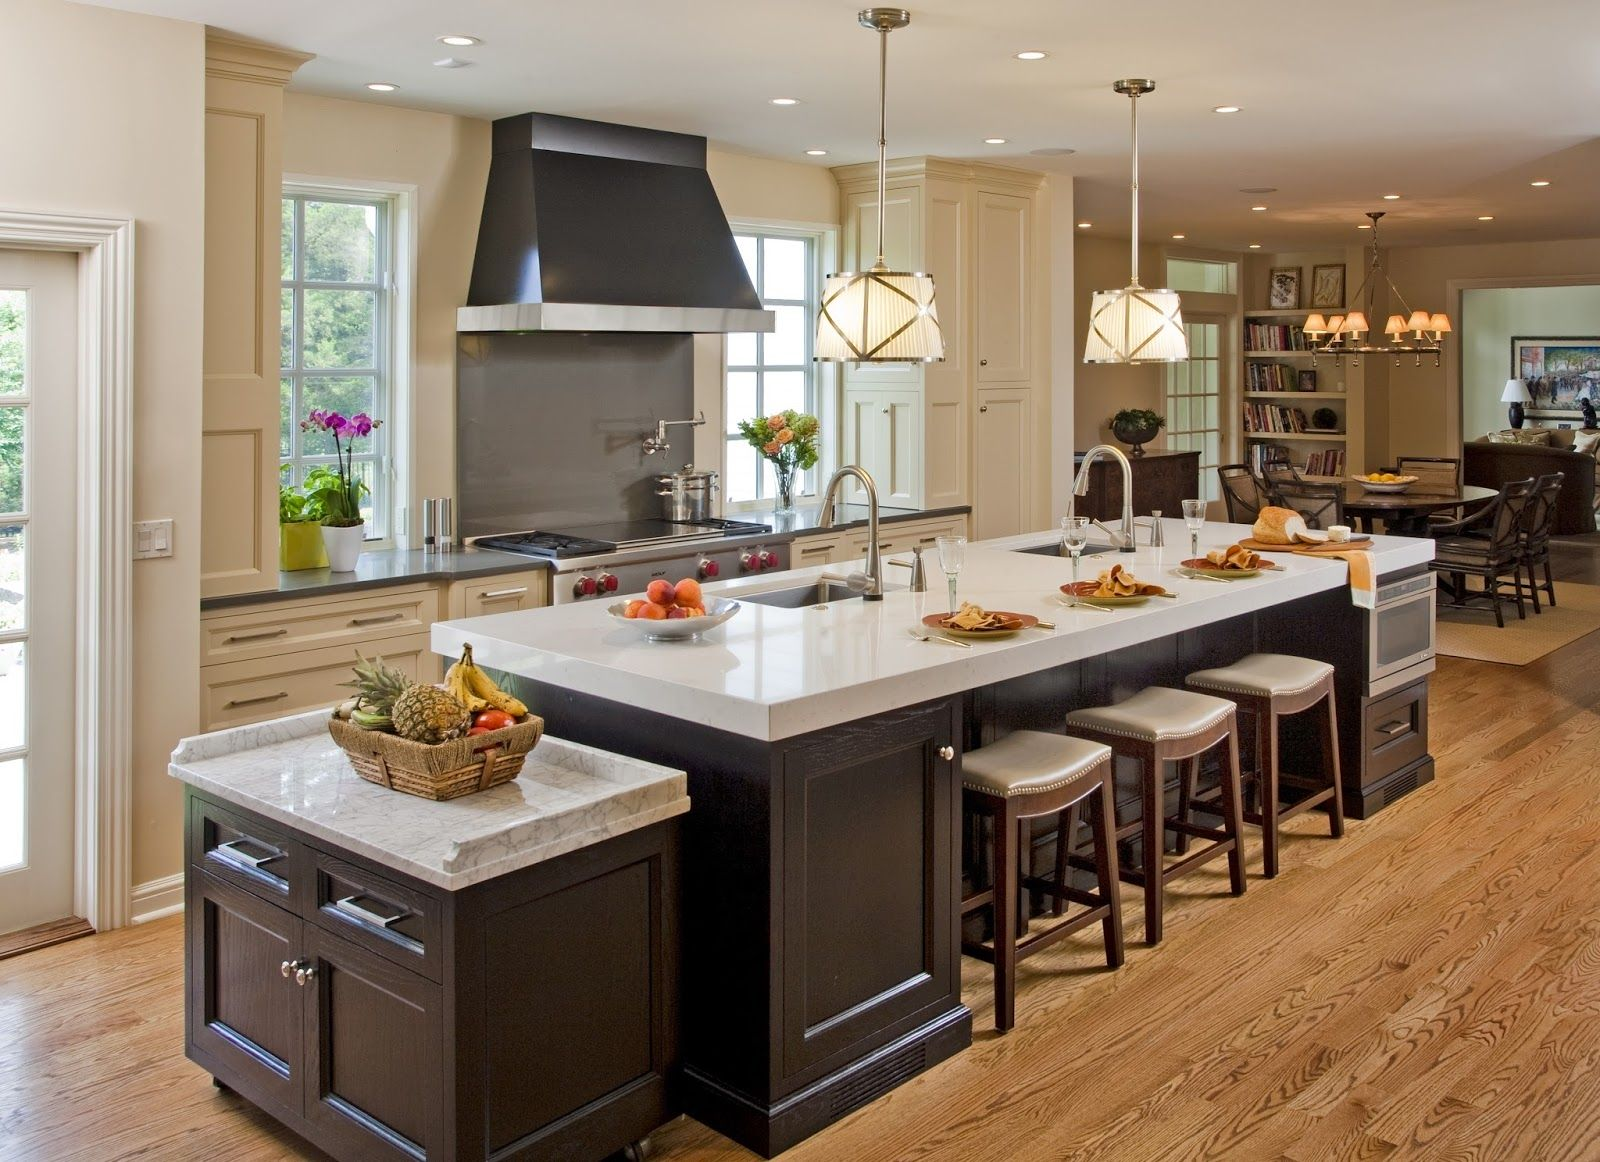 Uncategorized Houzz Kitchen Countertops love the windows on either side of stove kitchen pinterest houzz